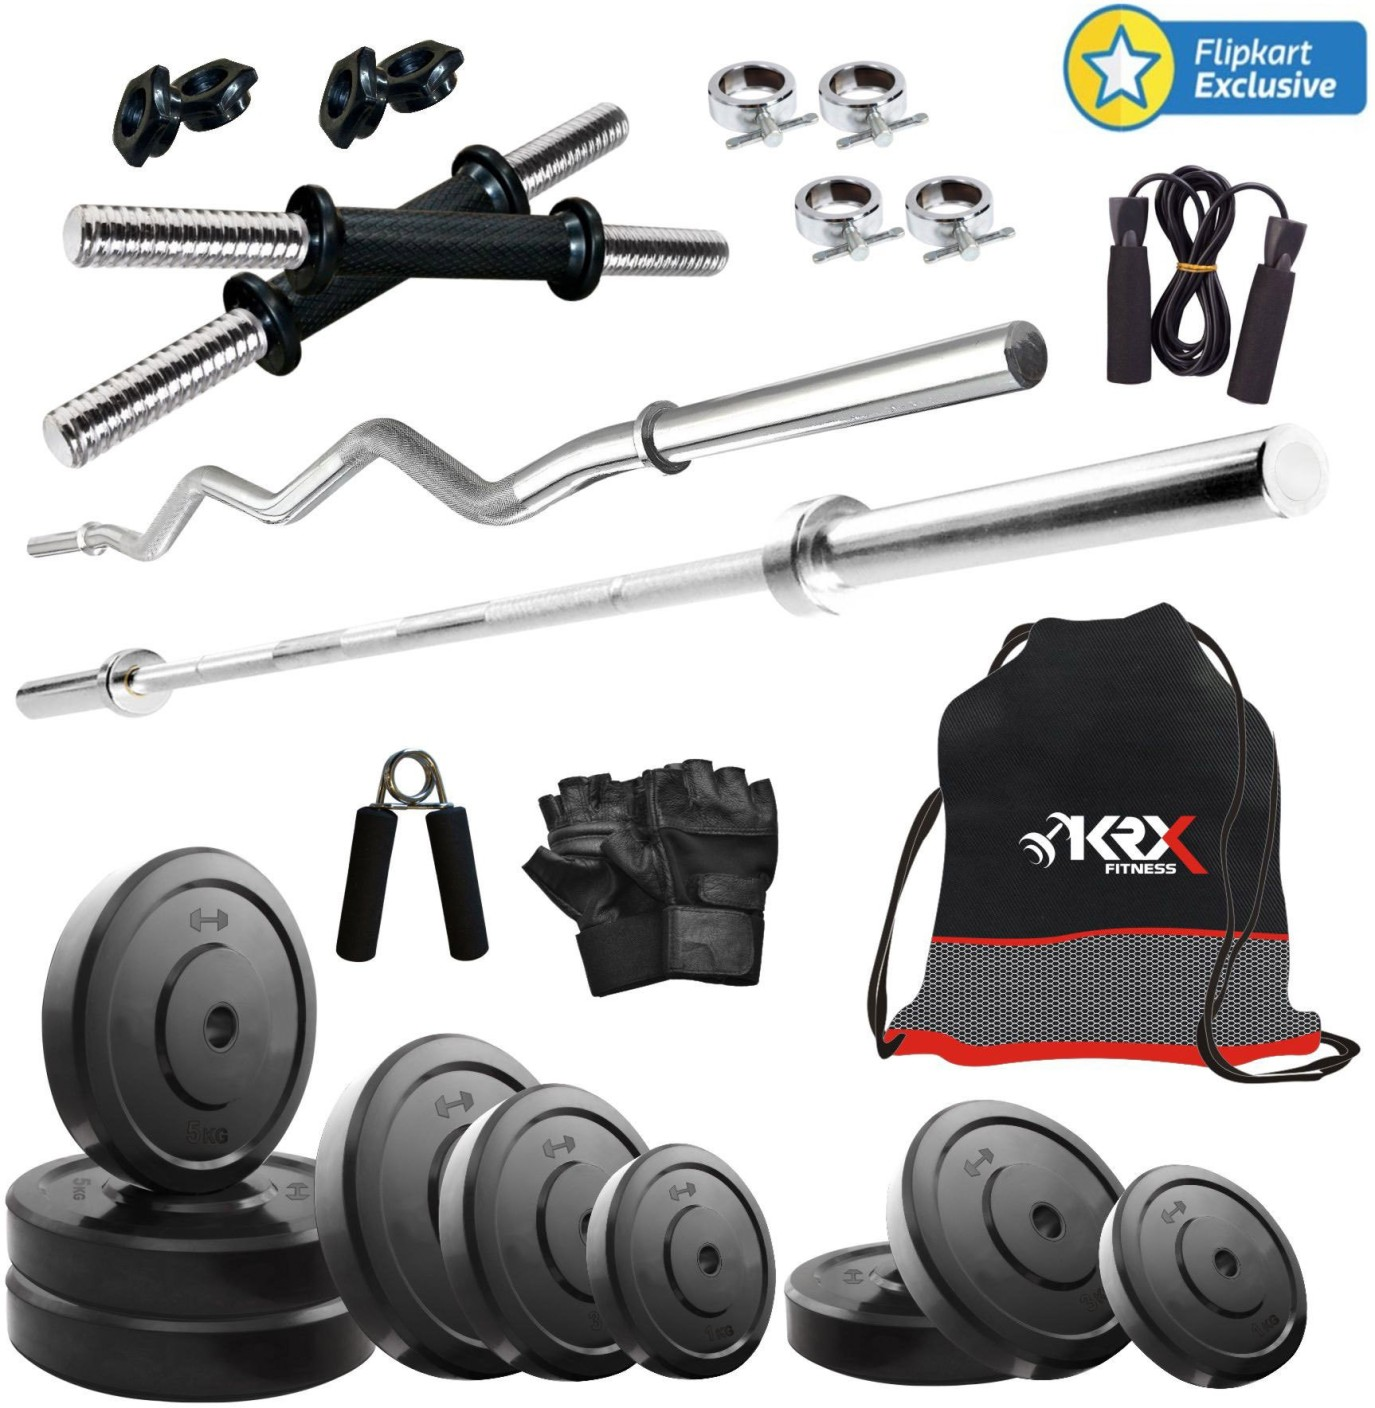 Krx kg combo home gym kit buy